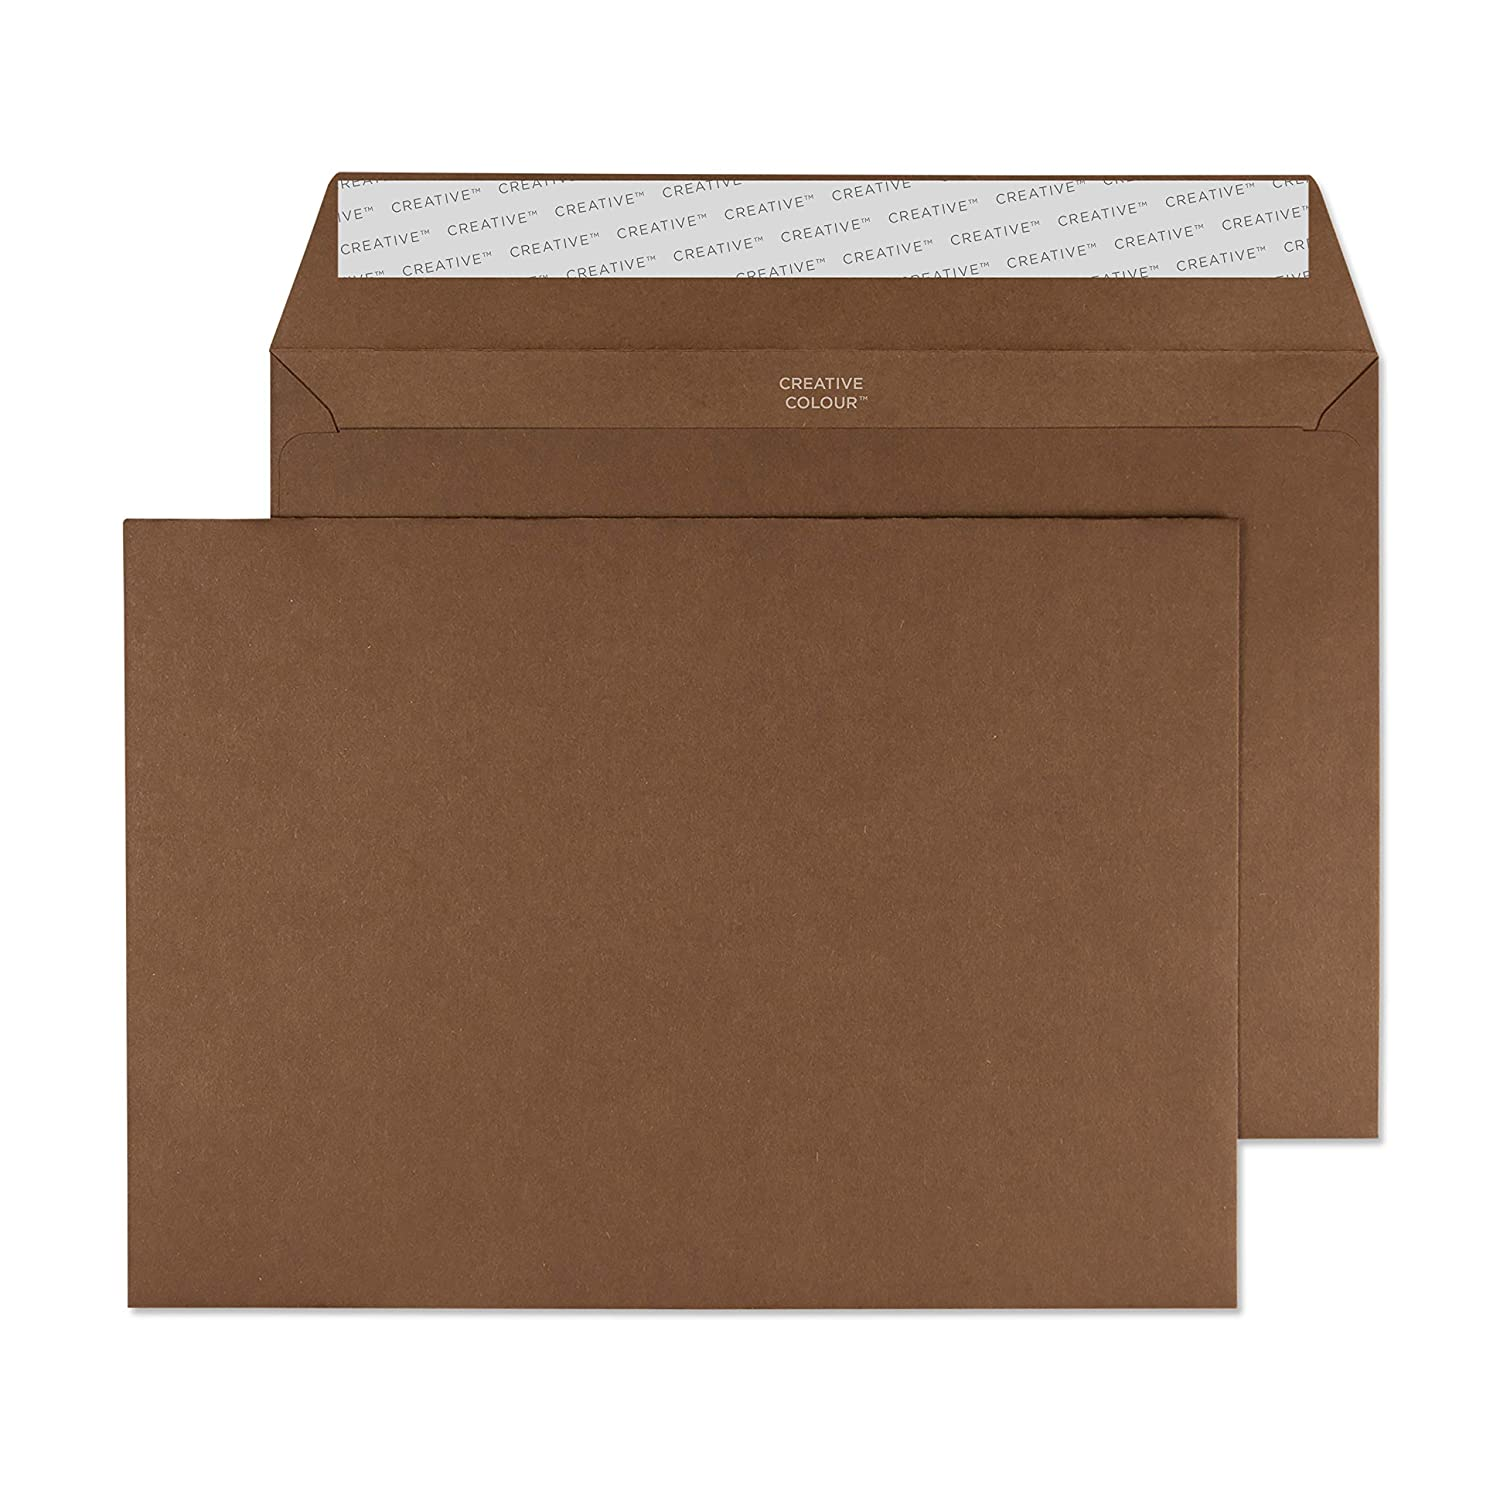 6 x 9 Inches Dark Brown Invitation Envelopes 326-76 80lb Paper Blake Creative Color Peel /& Seal - Pack of 500 Bitter Chocolate